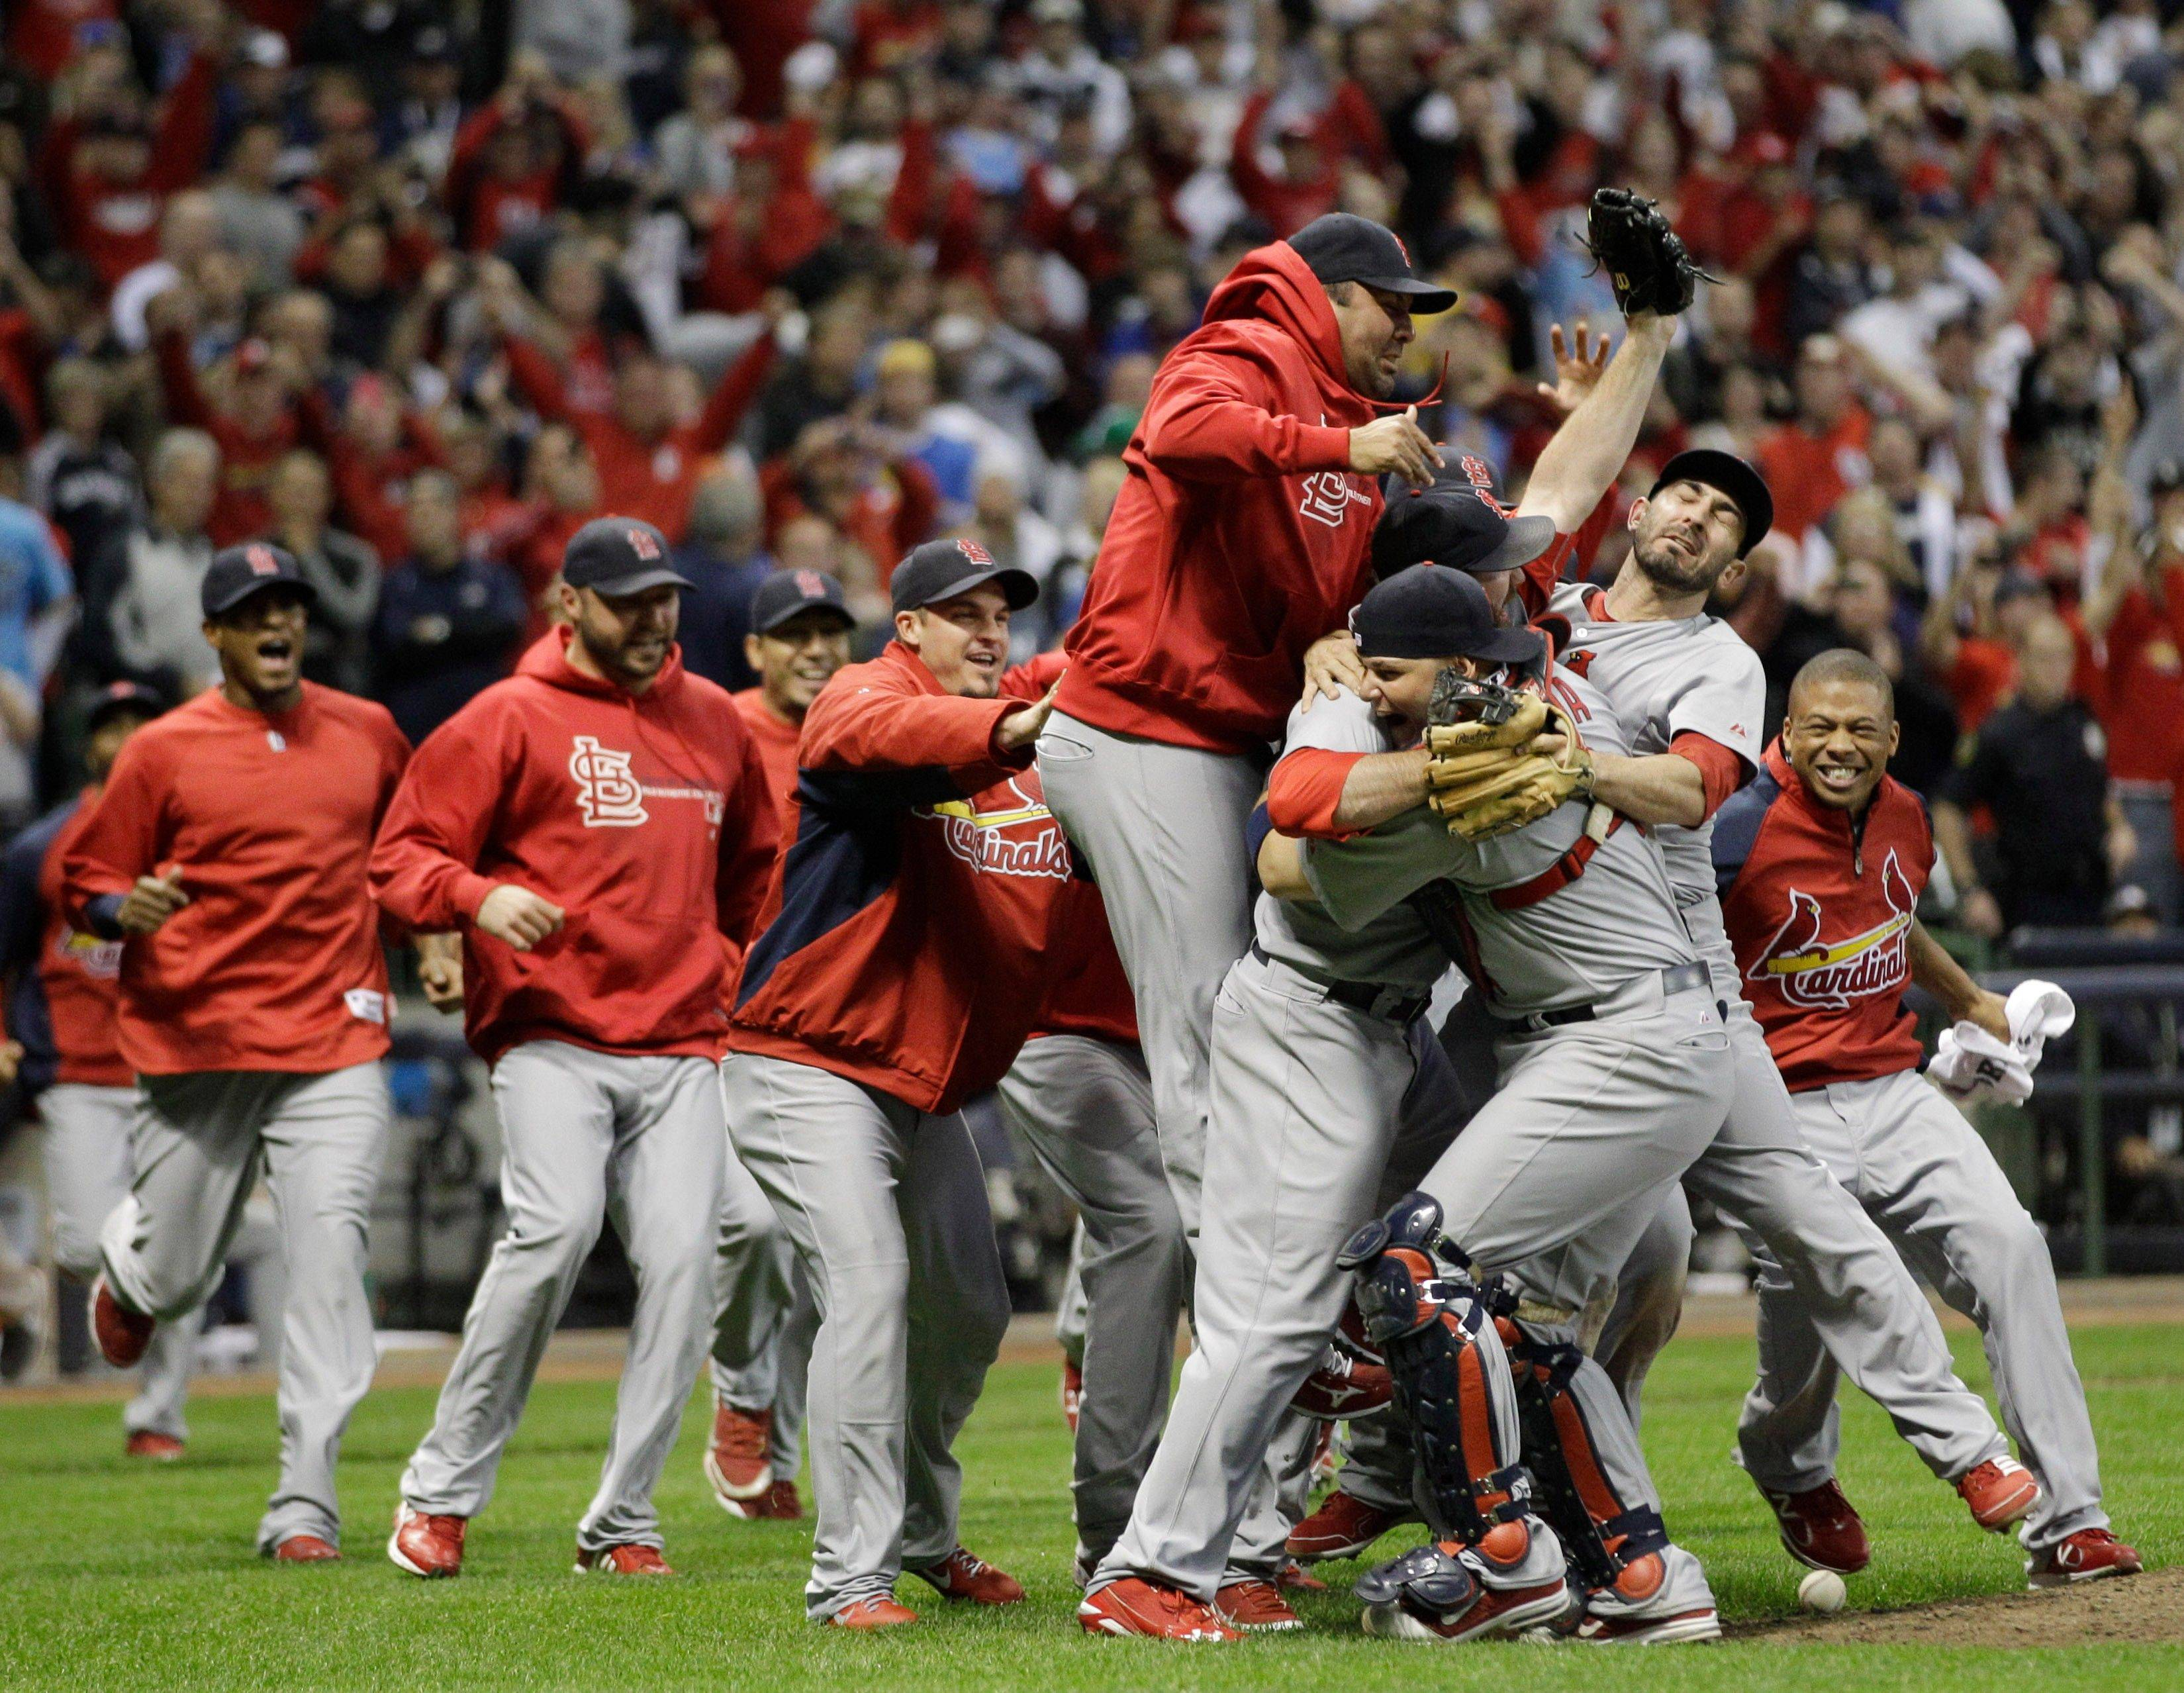 Cardinals headed to World Series